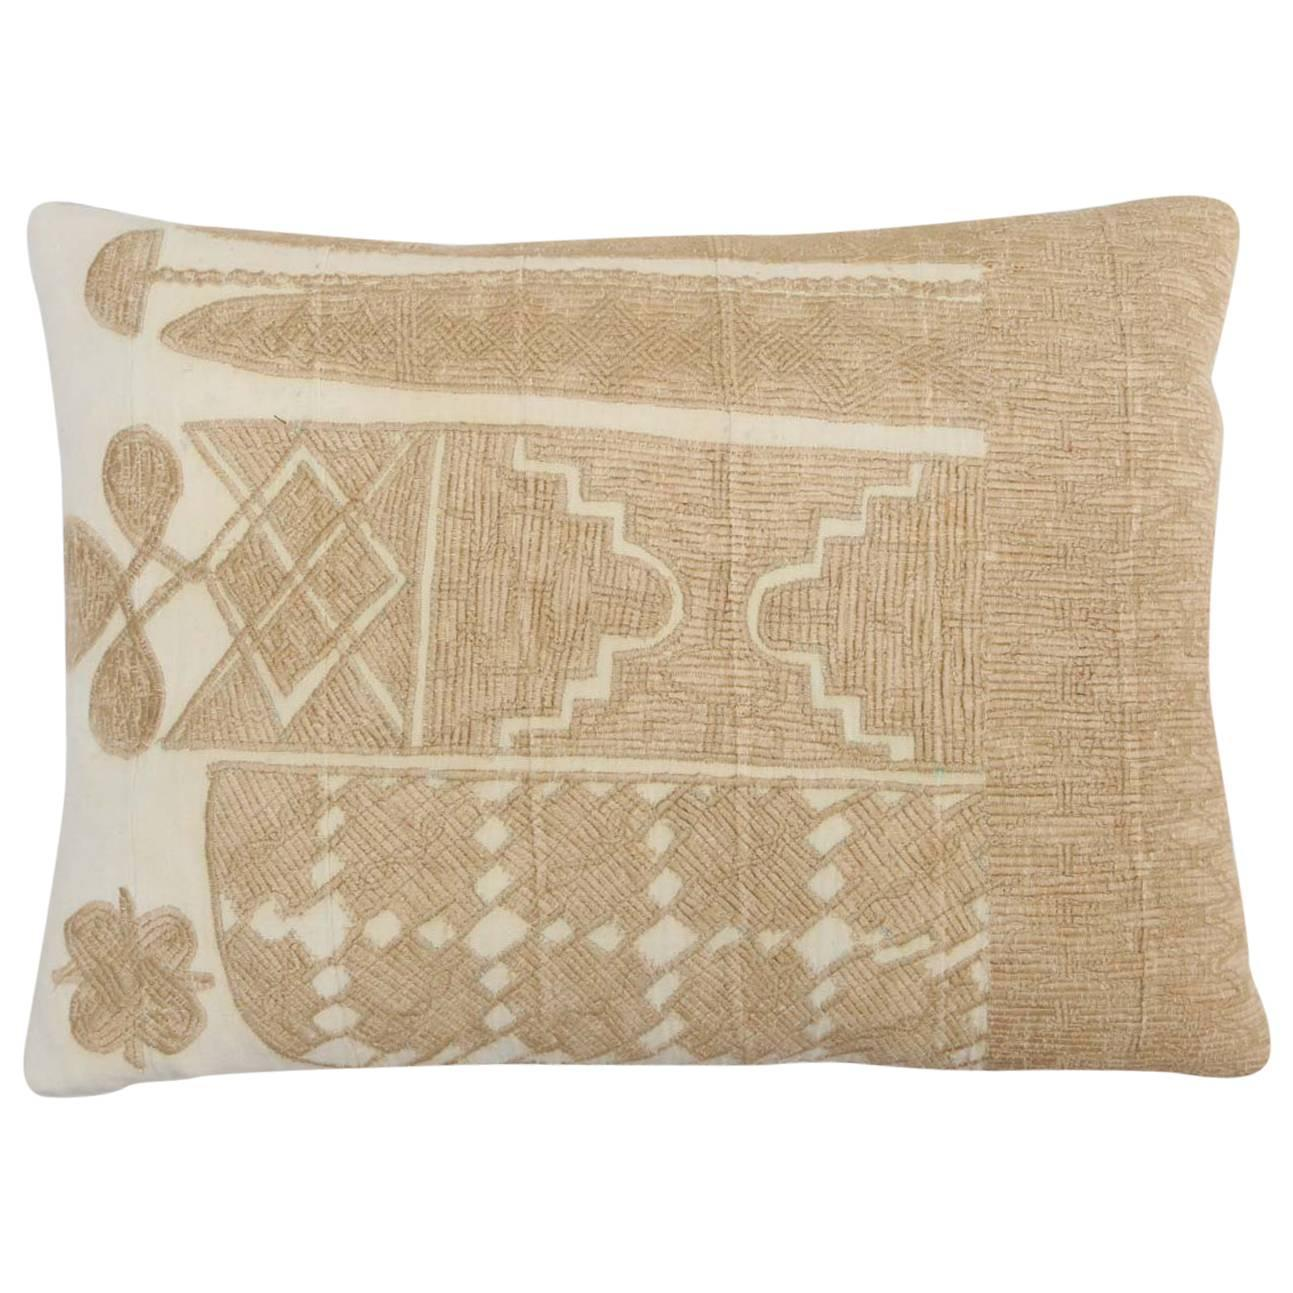 Vintage African Embroidered Pillow at 1stdibs